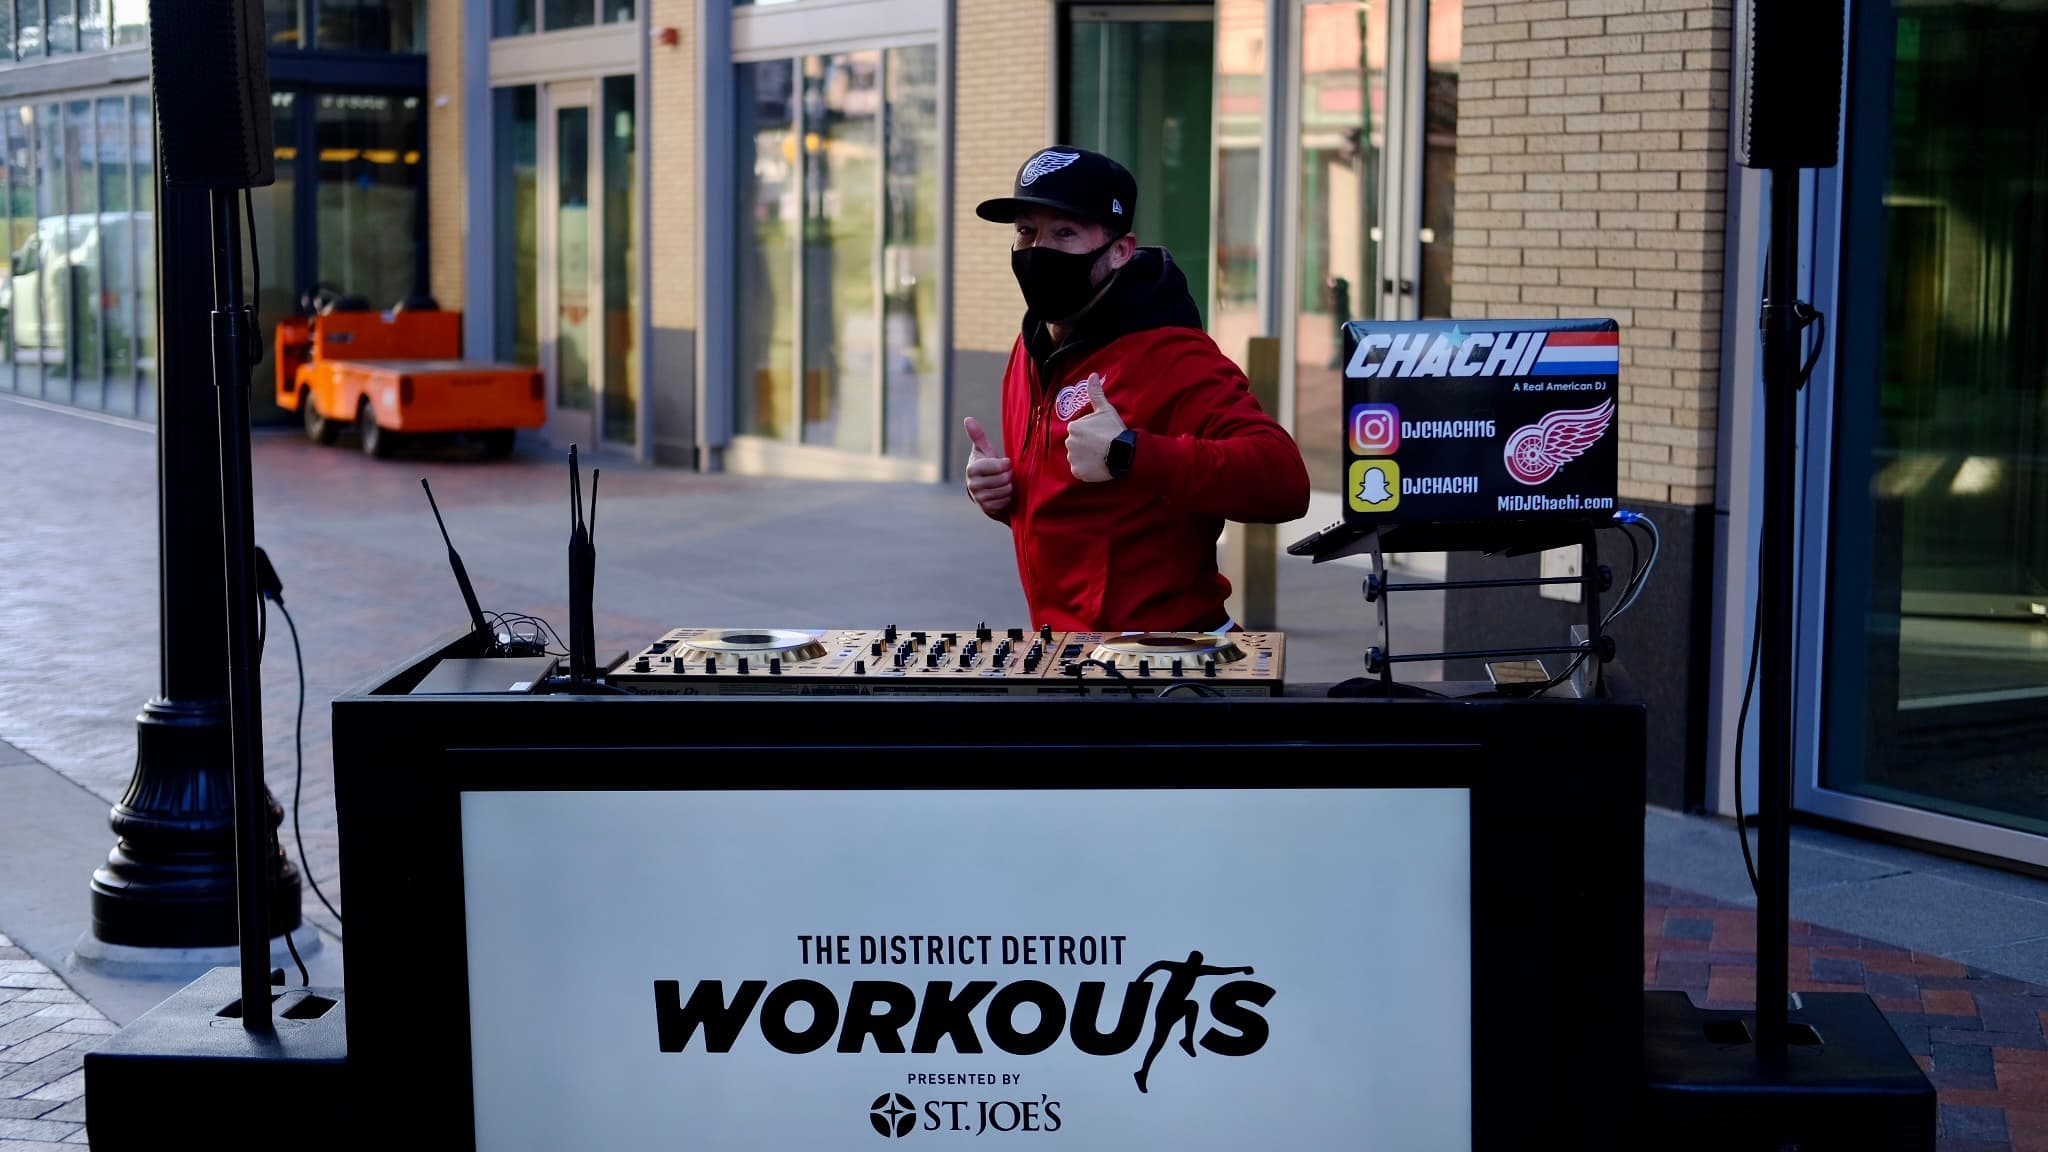 Dj Chachi in the District Detroit